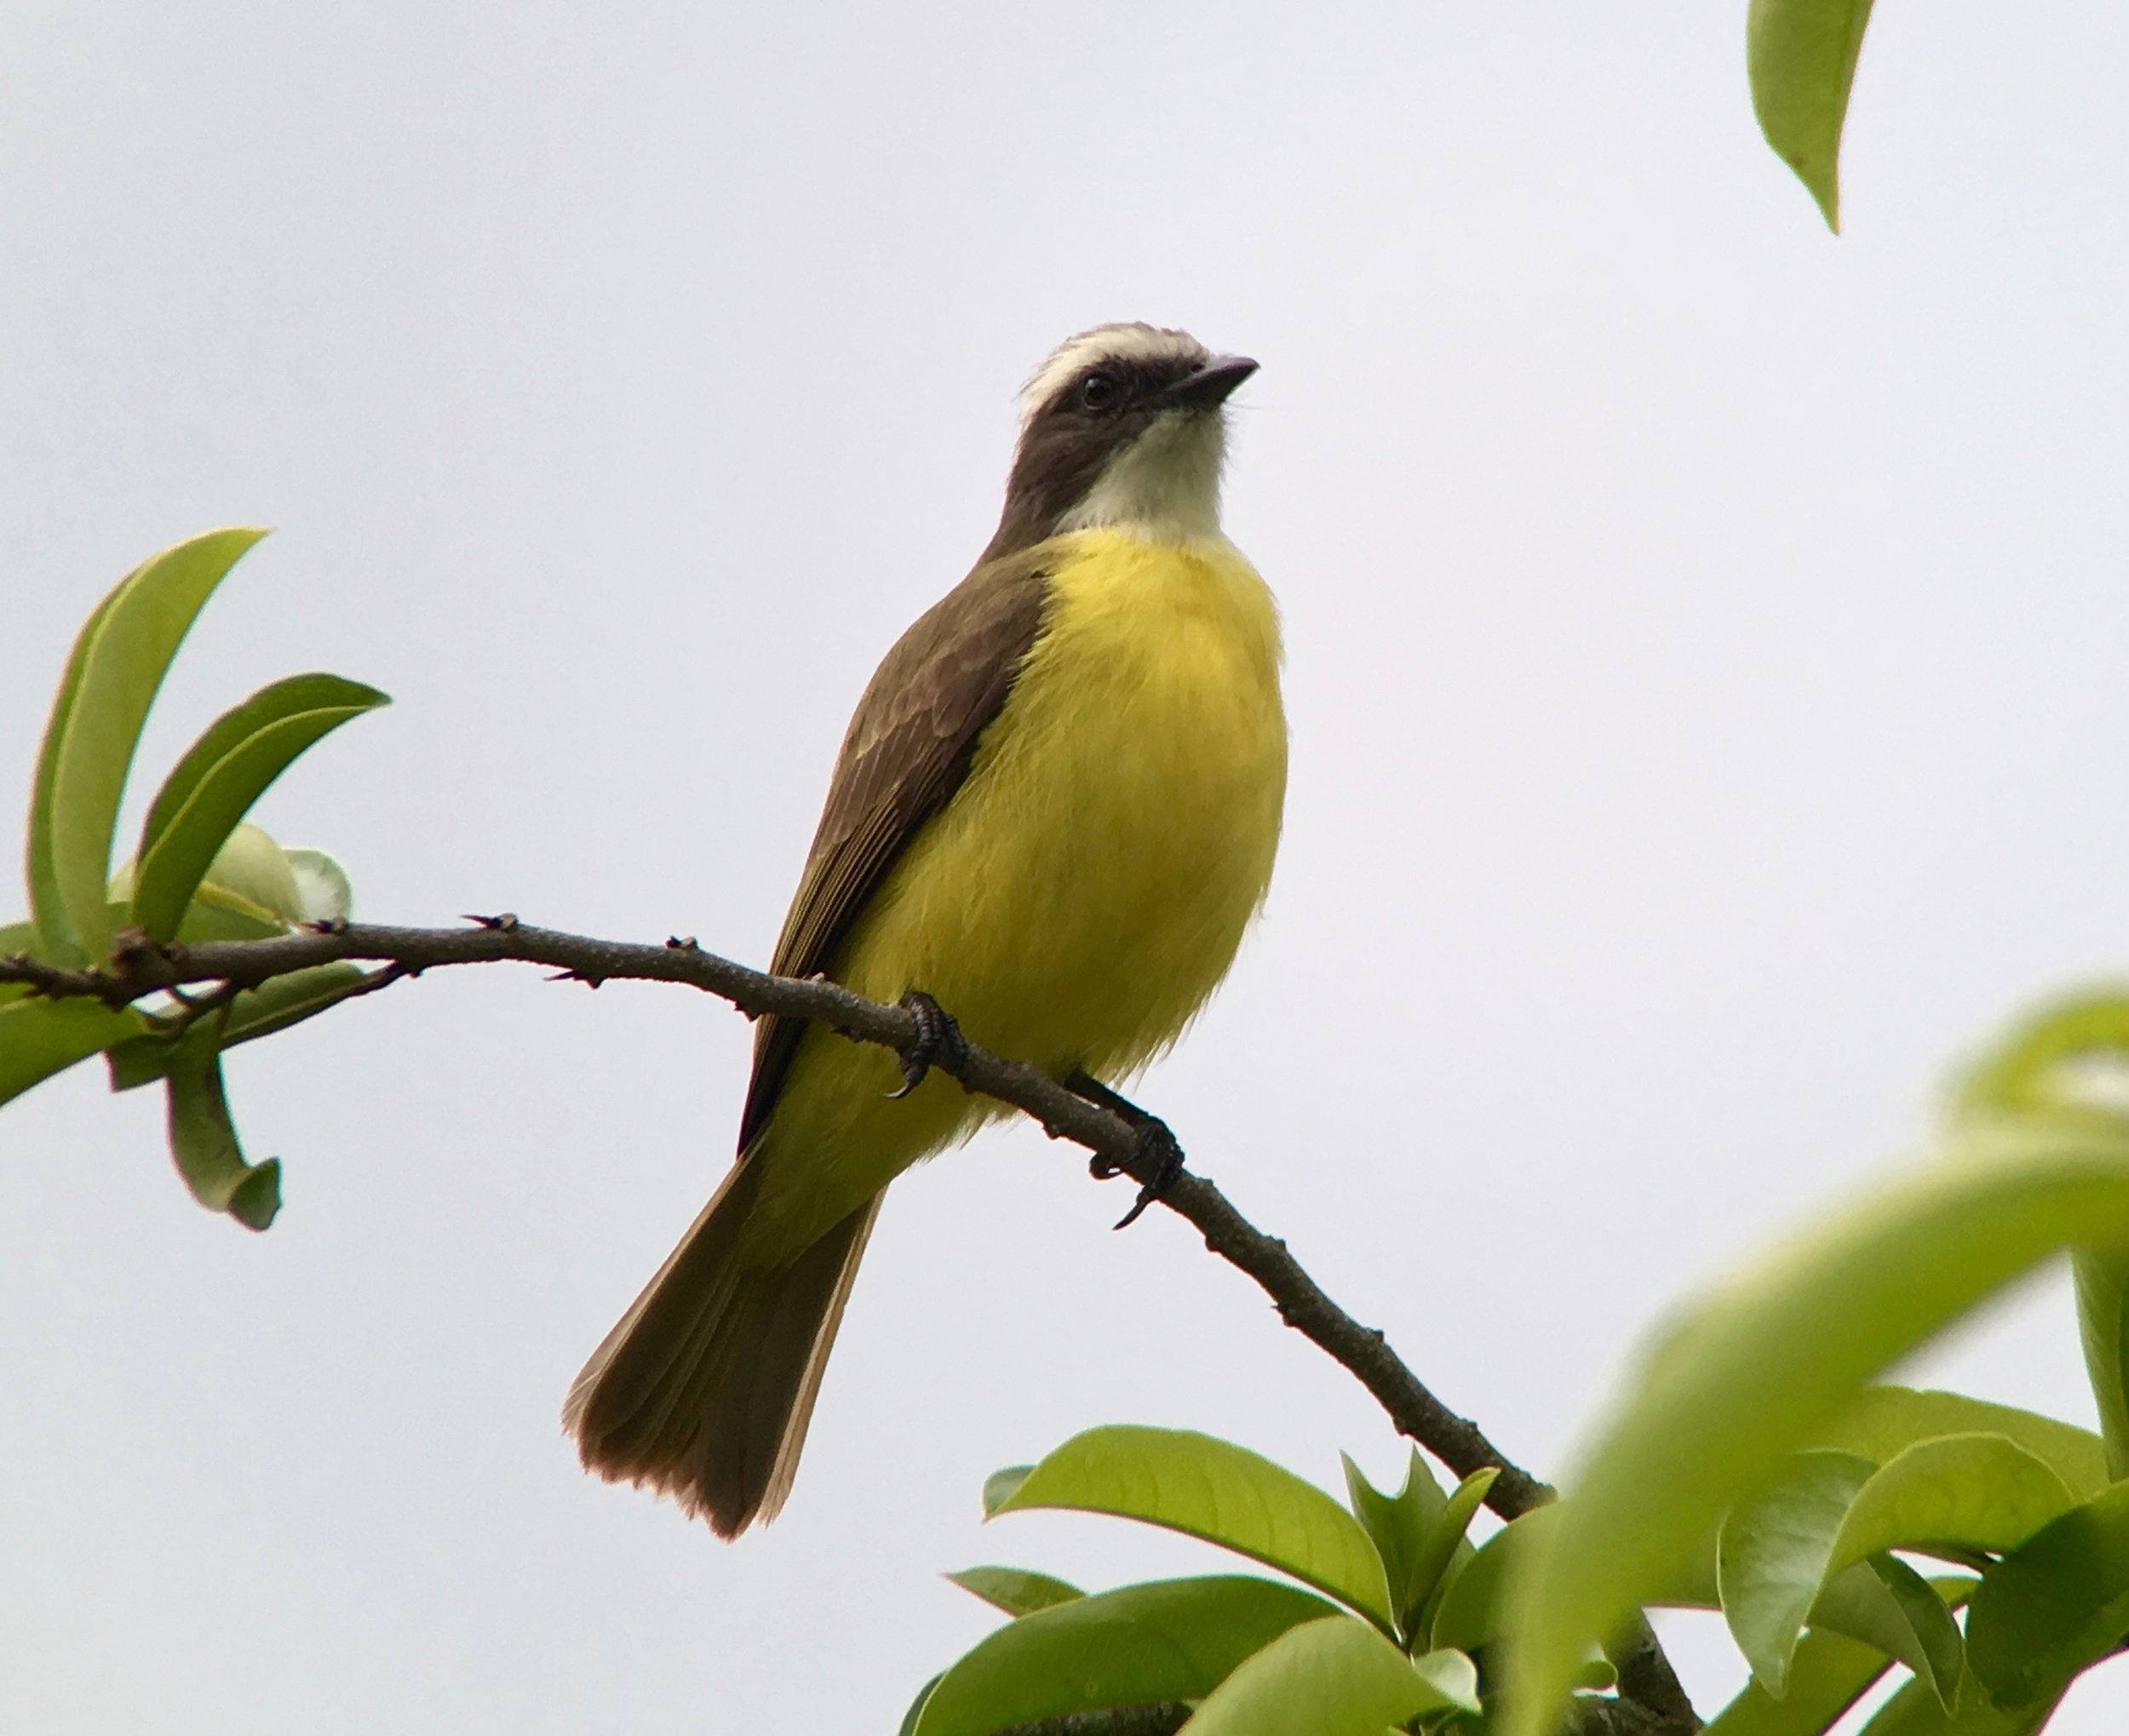 The social flycatcher is a daintier version of the great kiskadee you can see in south Texas.